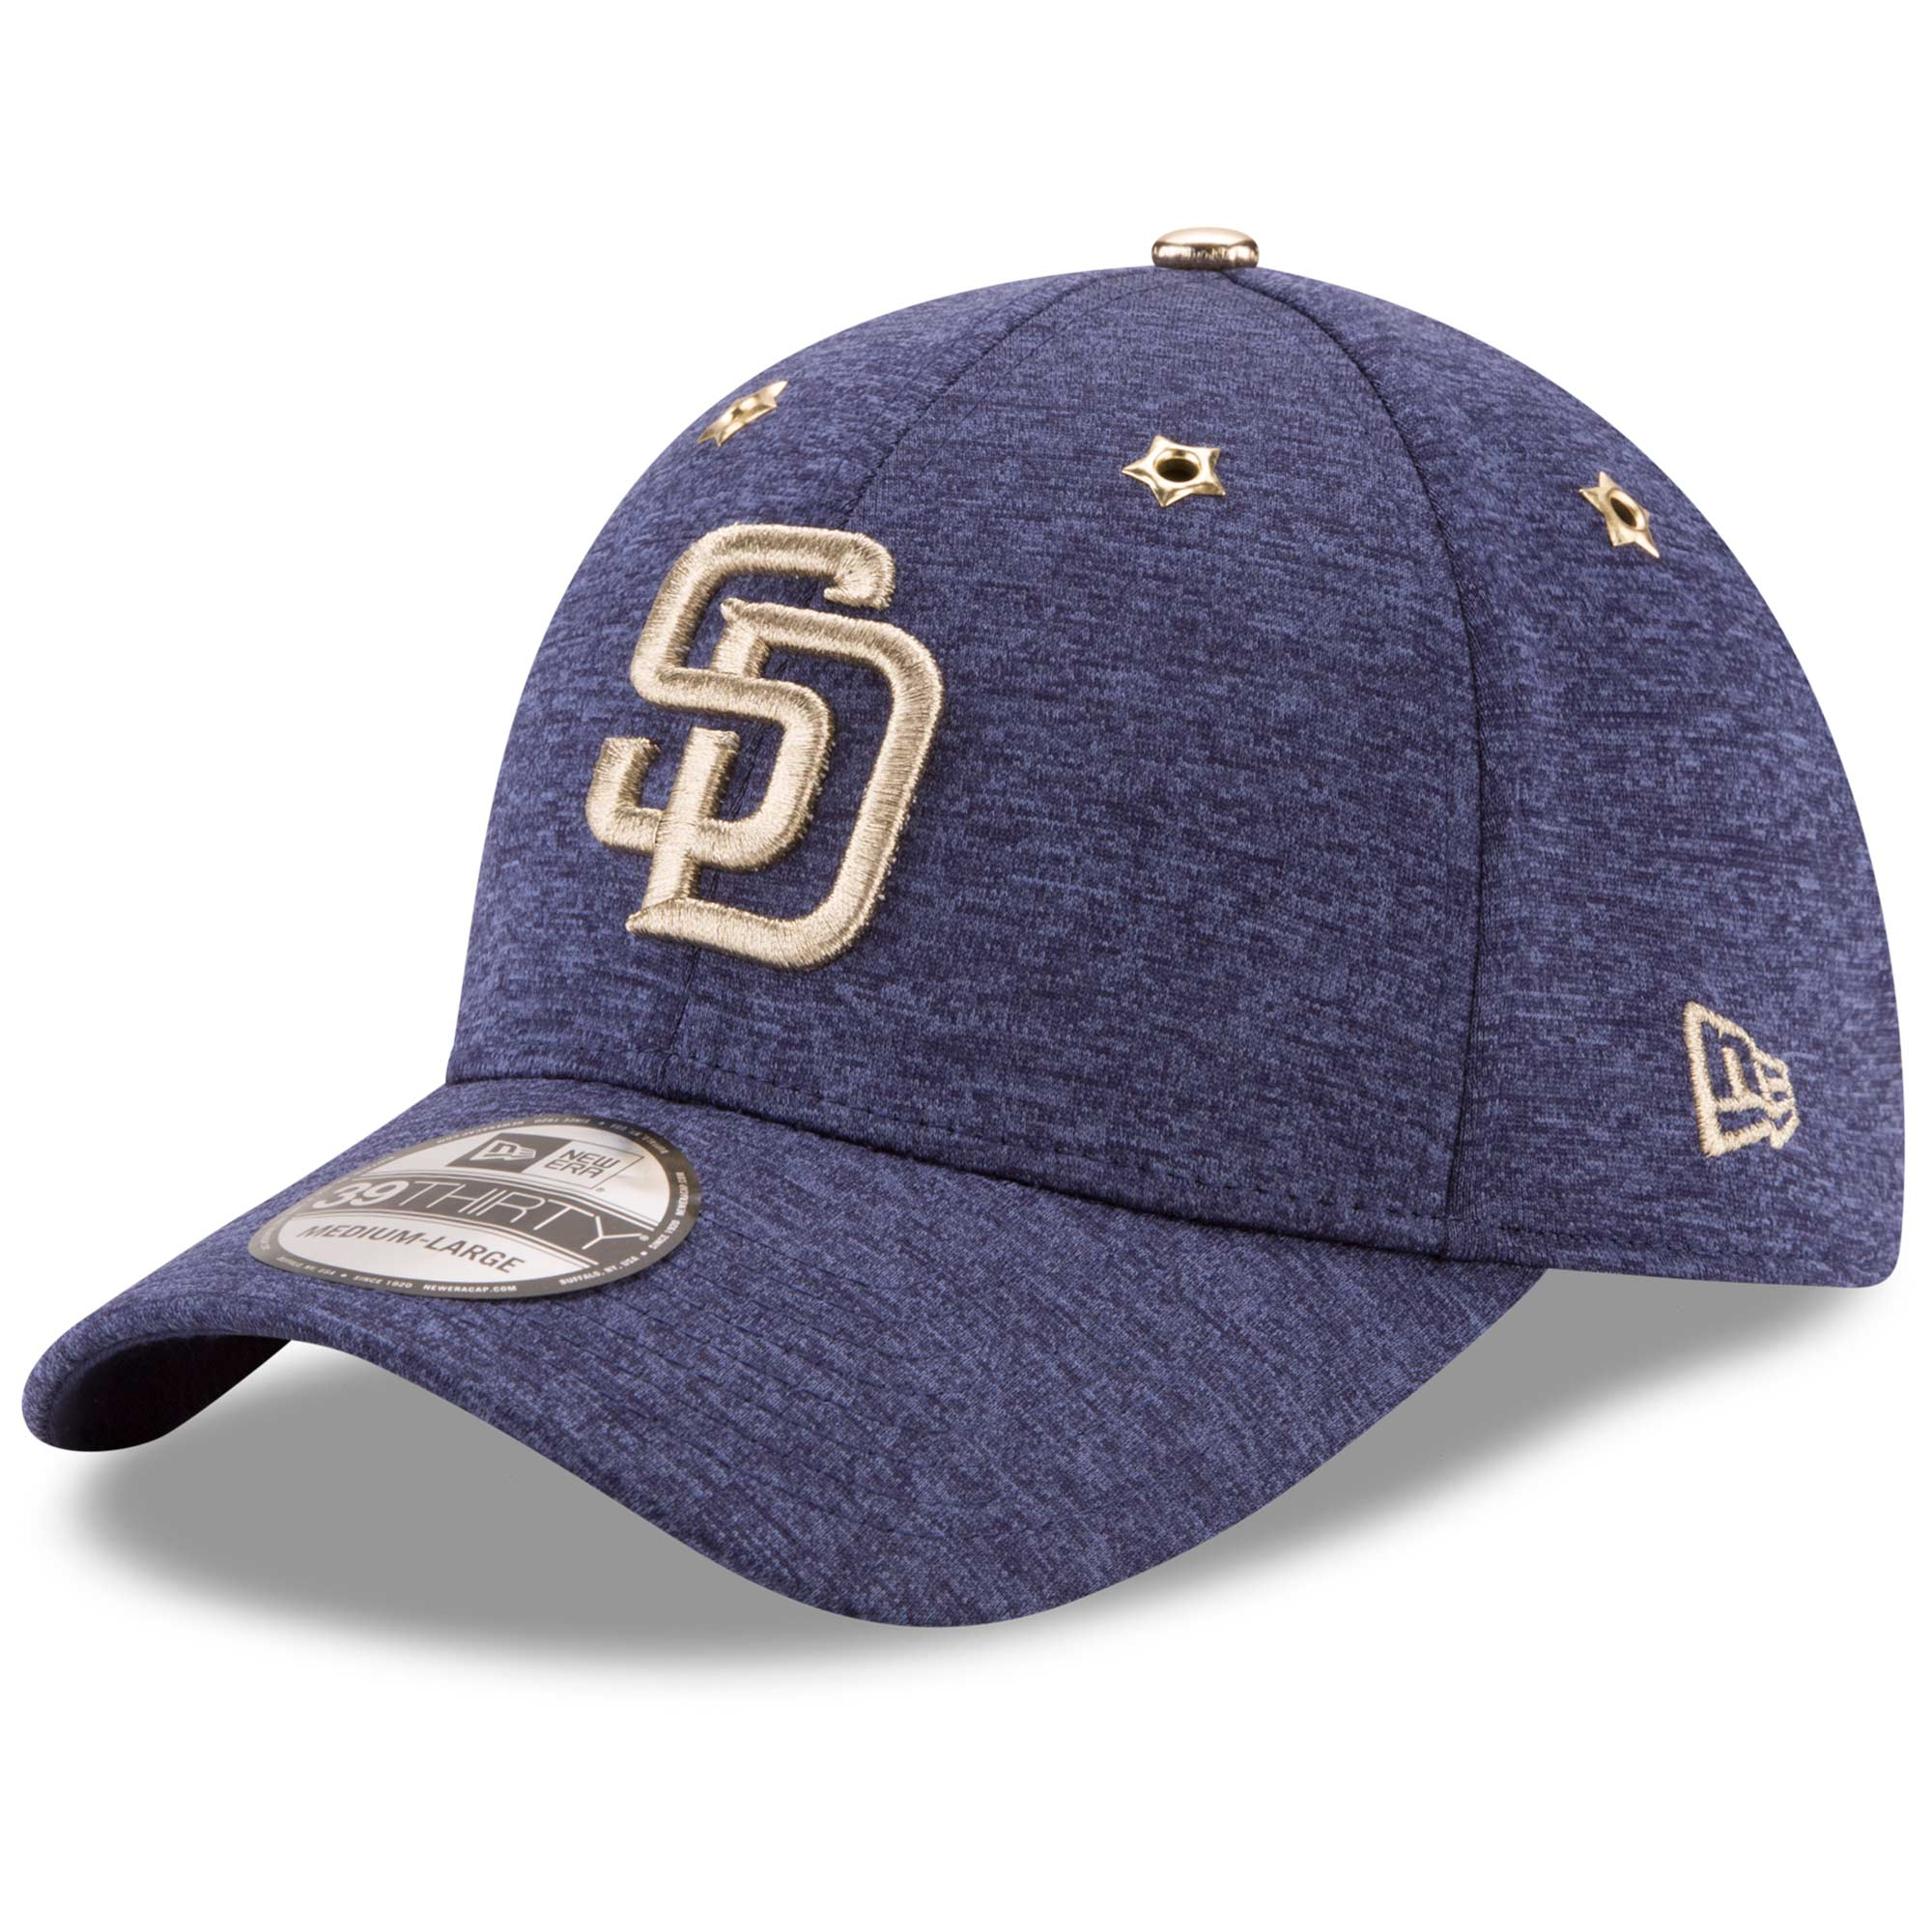 save off 97042 c470a San Diego Padres New Era 2017 MLB All-Star Game Side Patch 39THIRTY Flex Hat  - Heathered Navy - Walmart.com